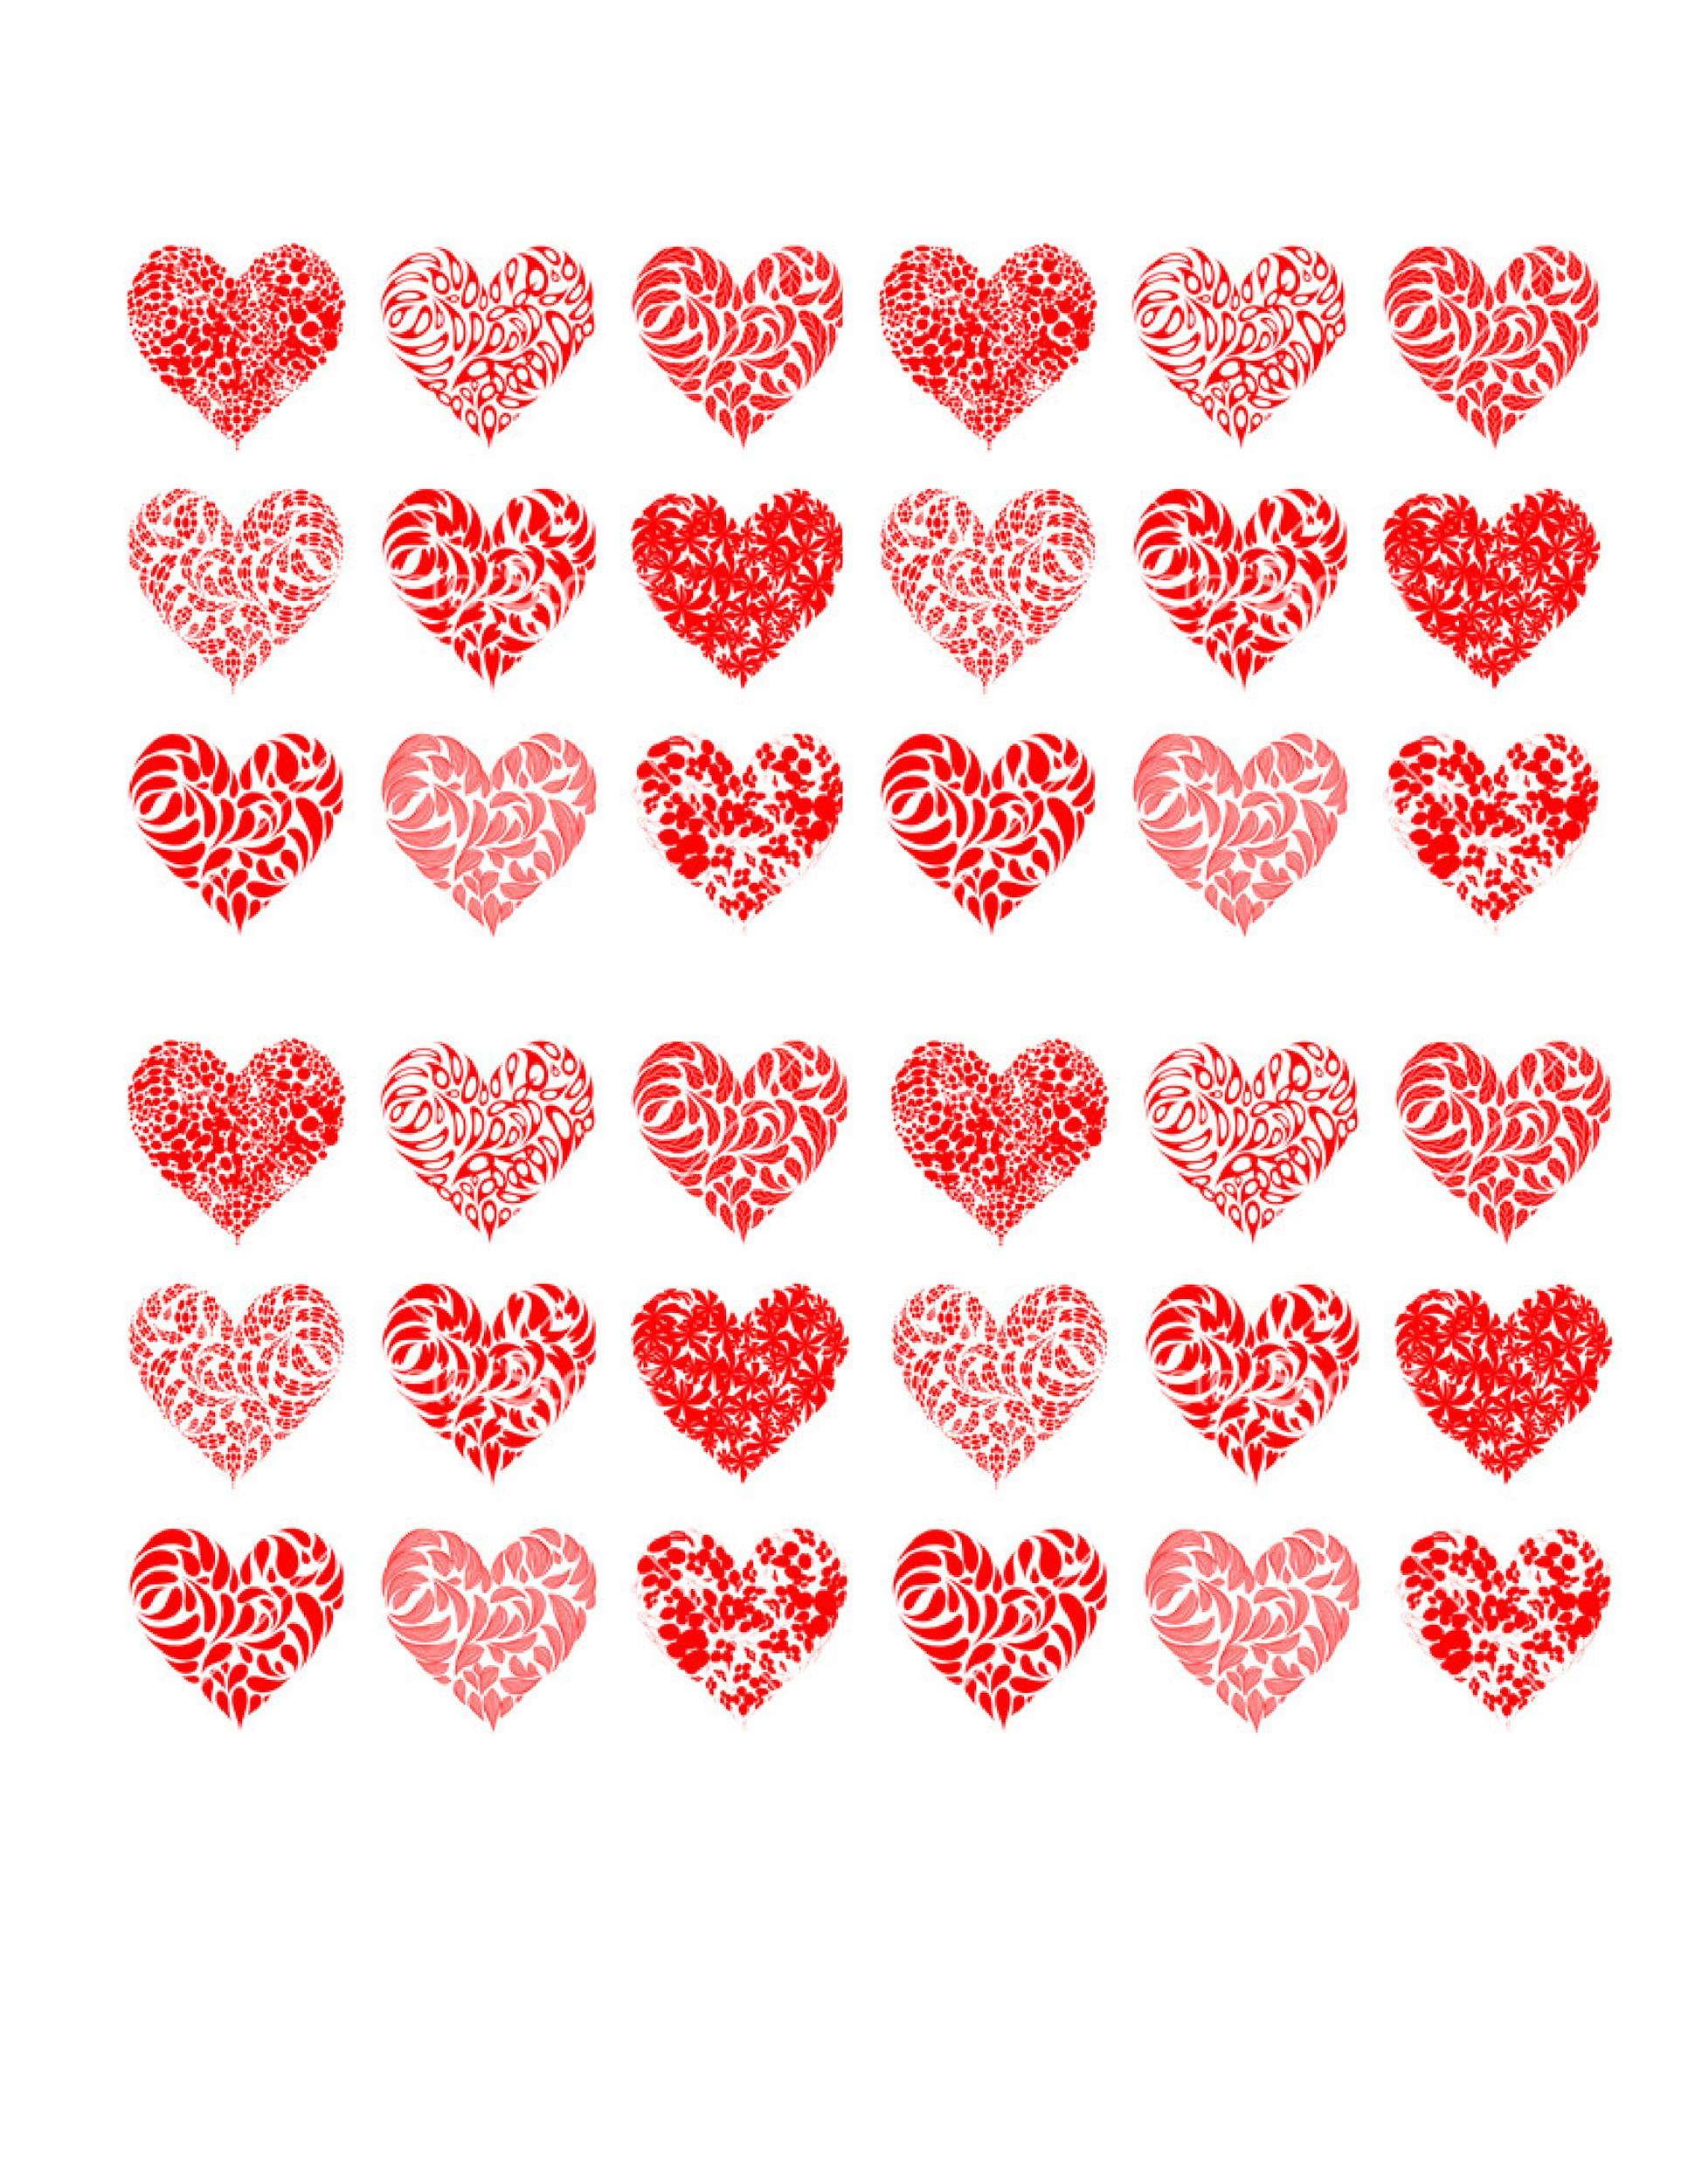 Heart shape Template 26